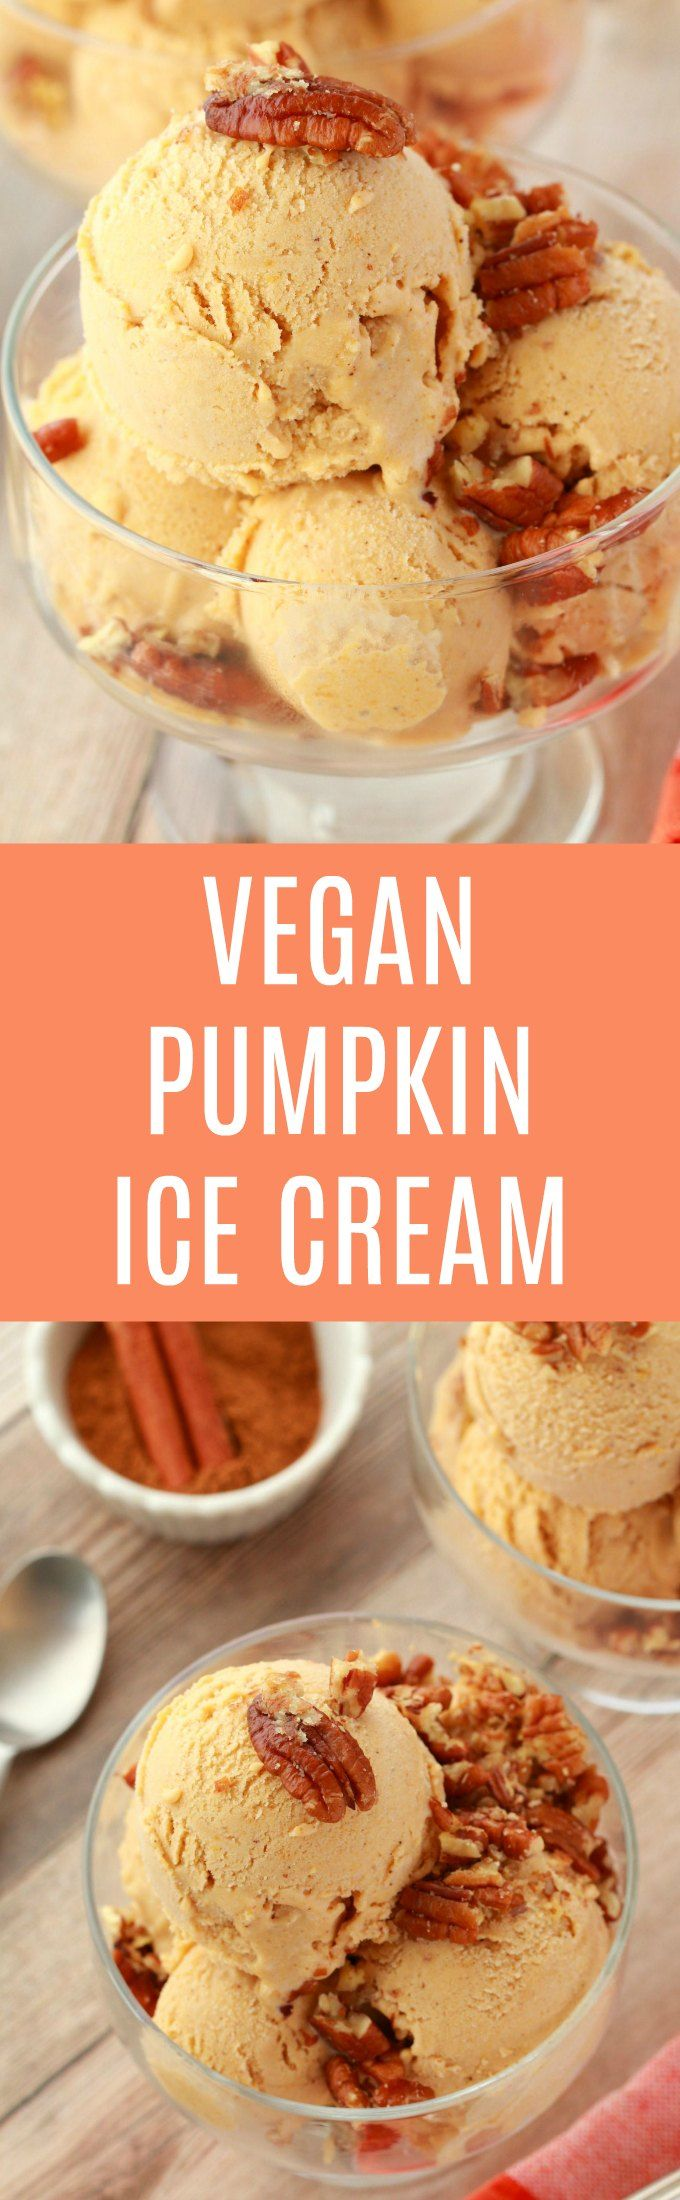 Smooth and perfectly textured pumpkin ice cream topped with pecan nuts. Loaded with pumpkin and pumpkin spice flavor, vegan and gluten-free. | lovingitvegan.com